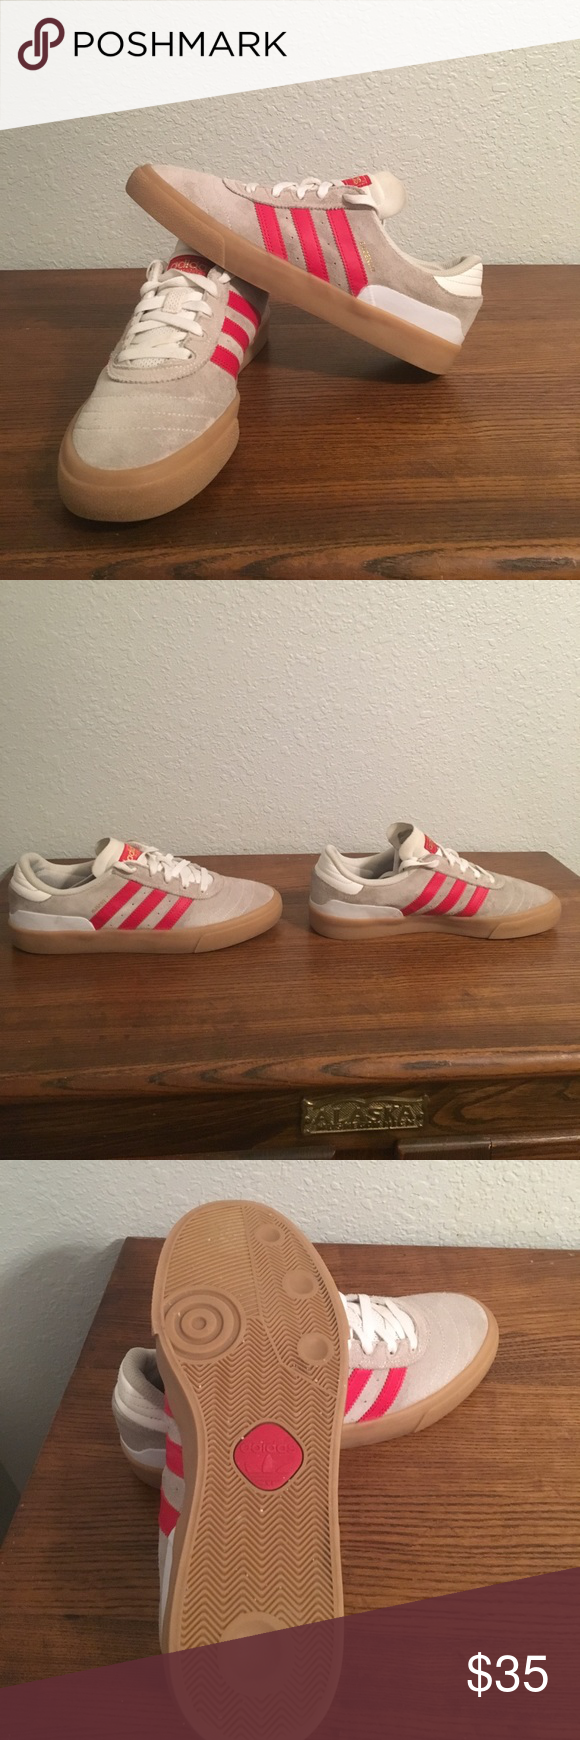 Adidas Busenitz Shoes Only worn a few times 232135041